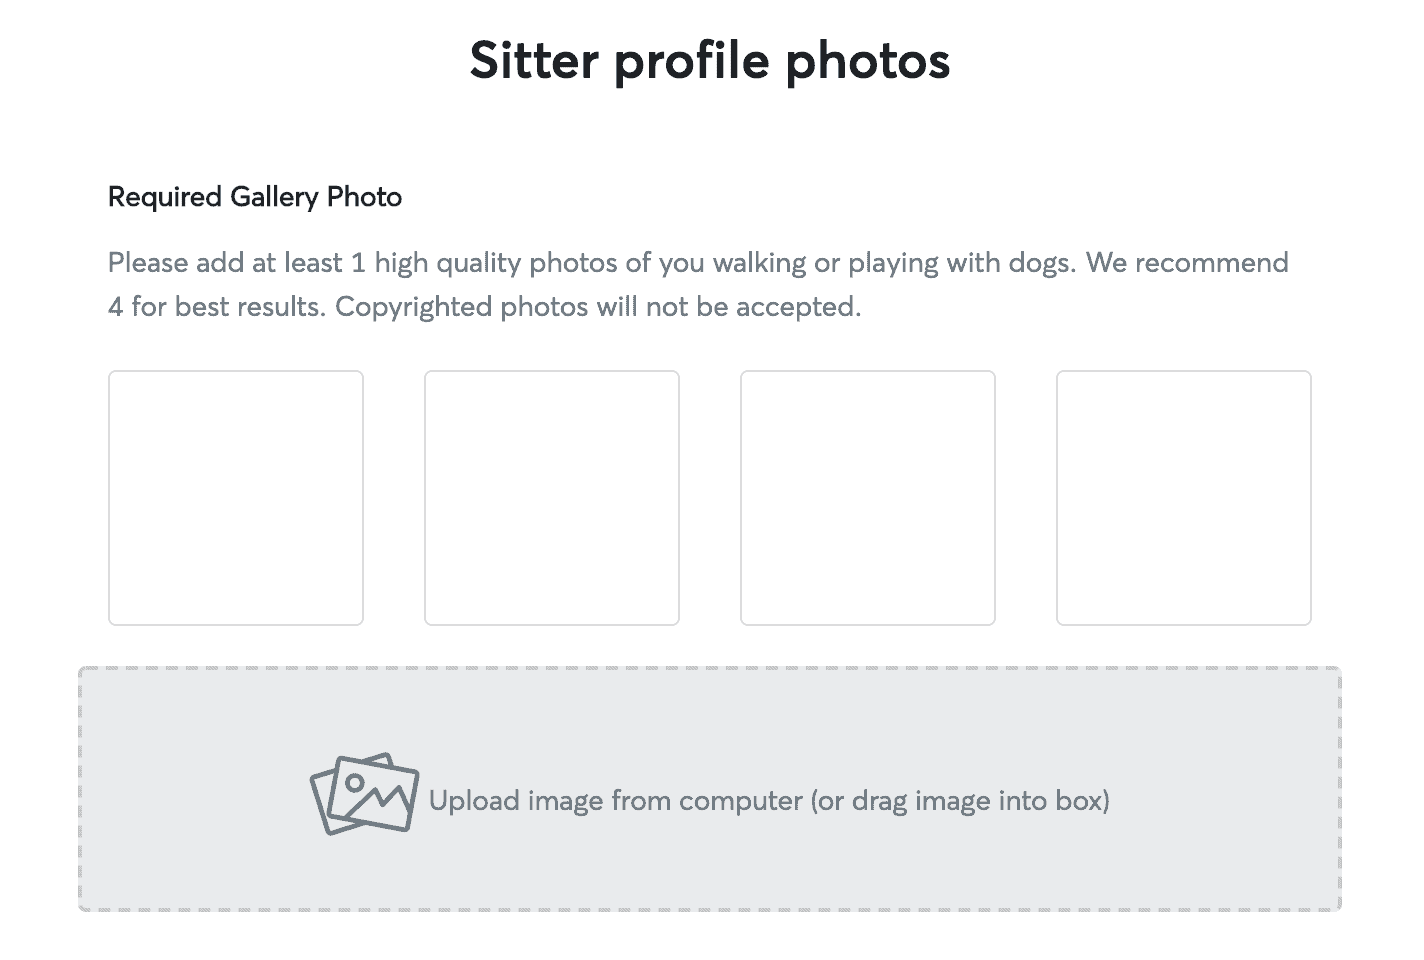 sitter profile photos